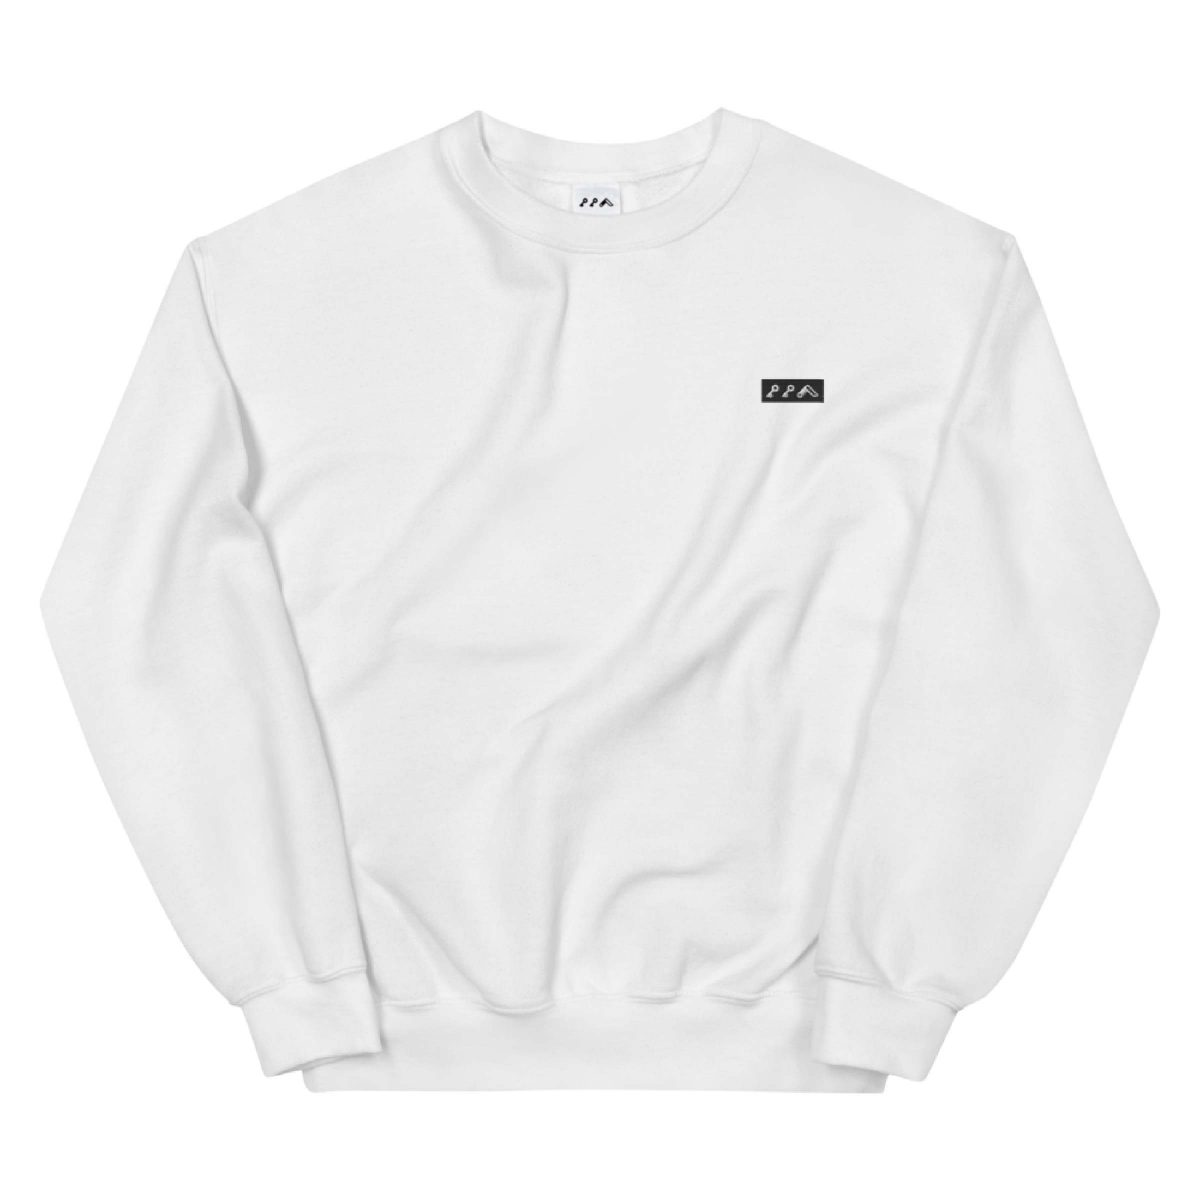 KIKICUTT LOGO embroidered sweatshirt by kikicutt sweatshirt store